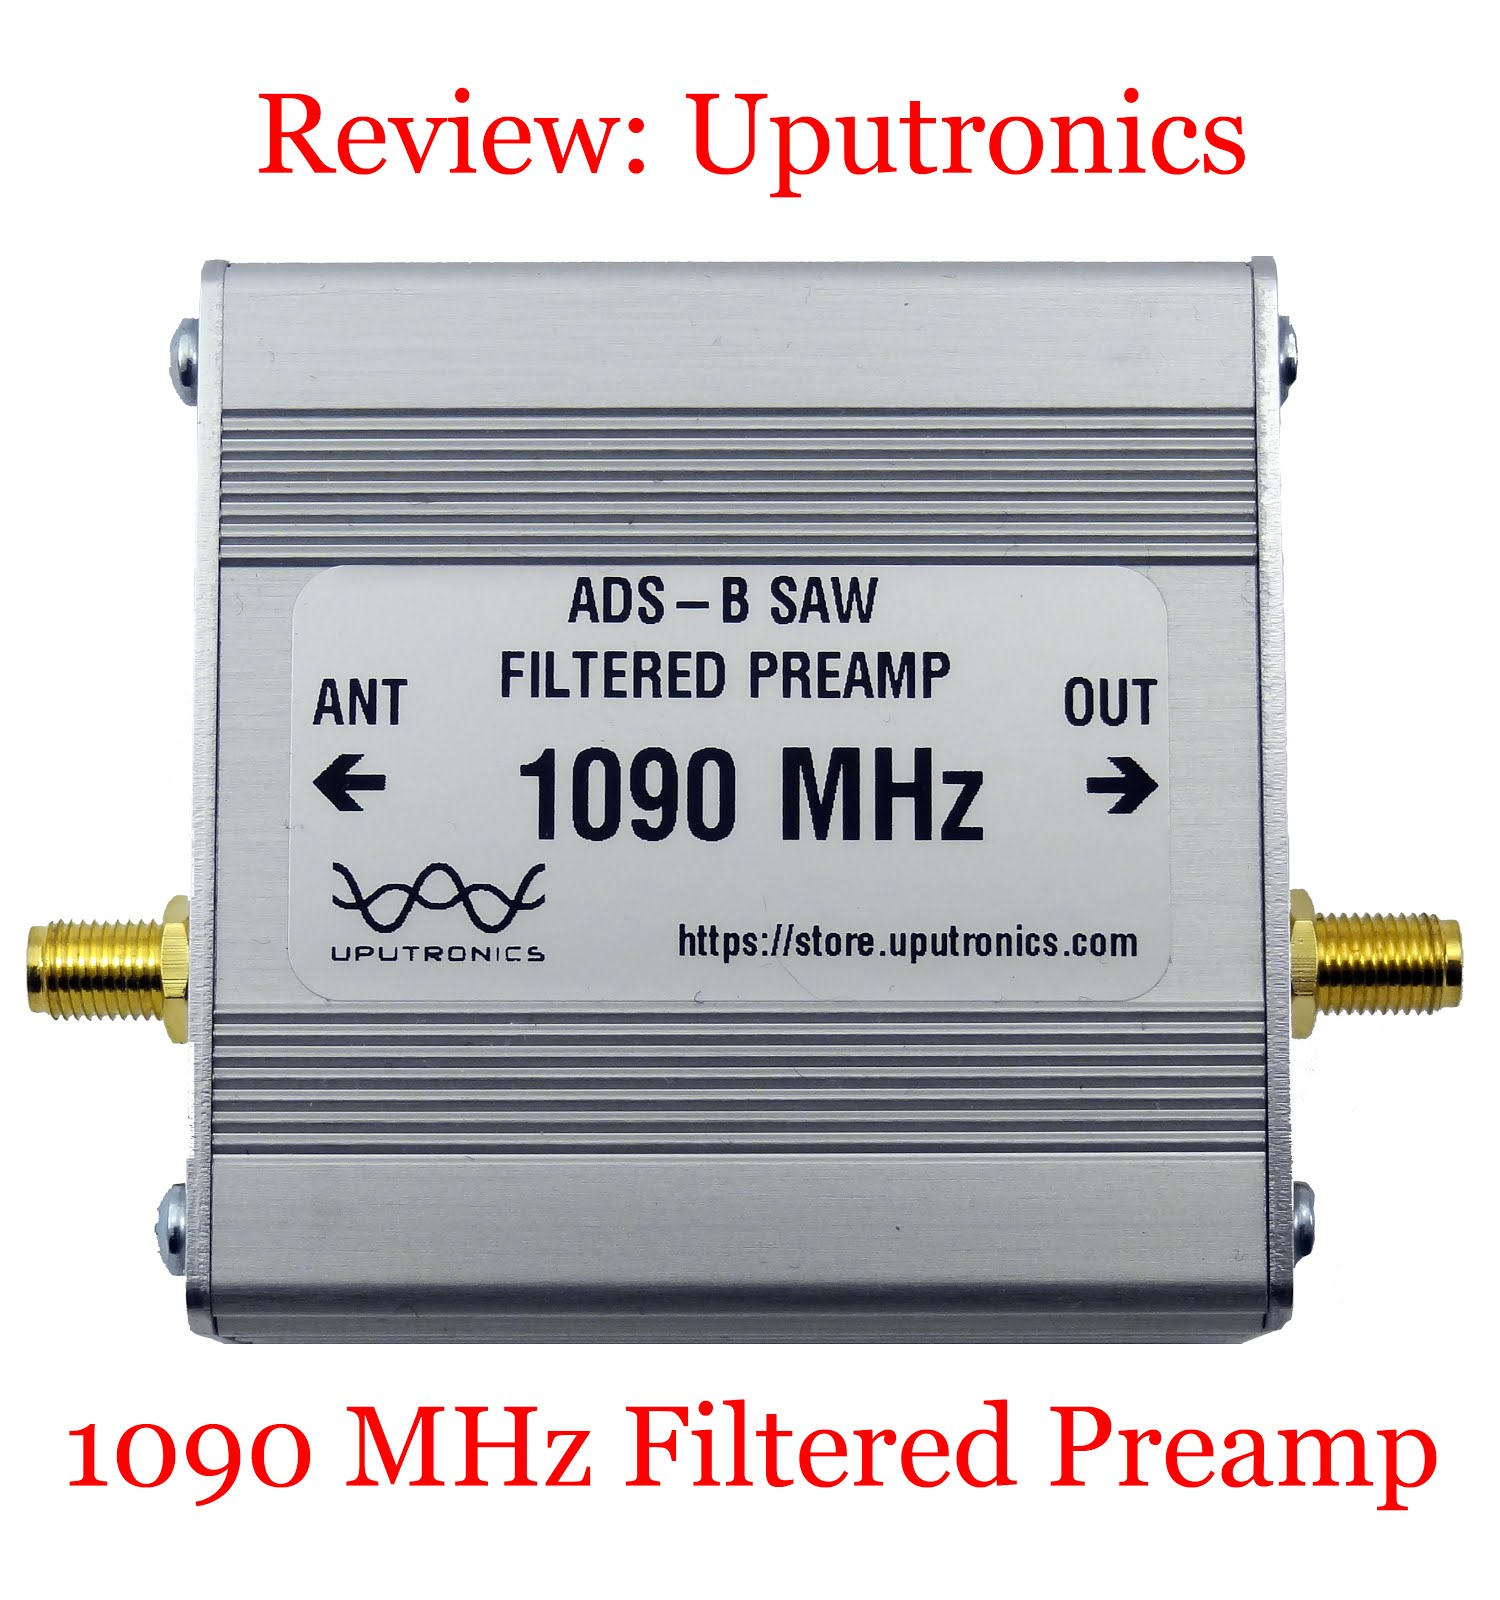 Radio for Everyone: Review: Uputronics 1090 MHz Filtered Preamp